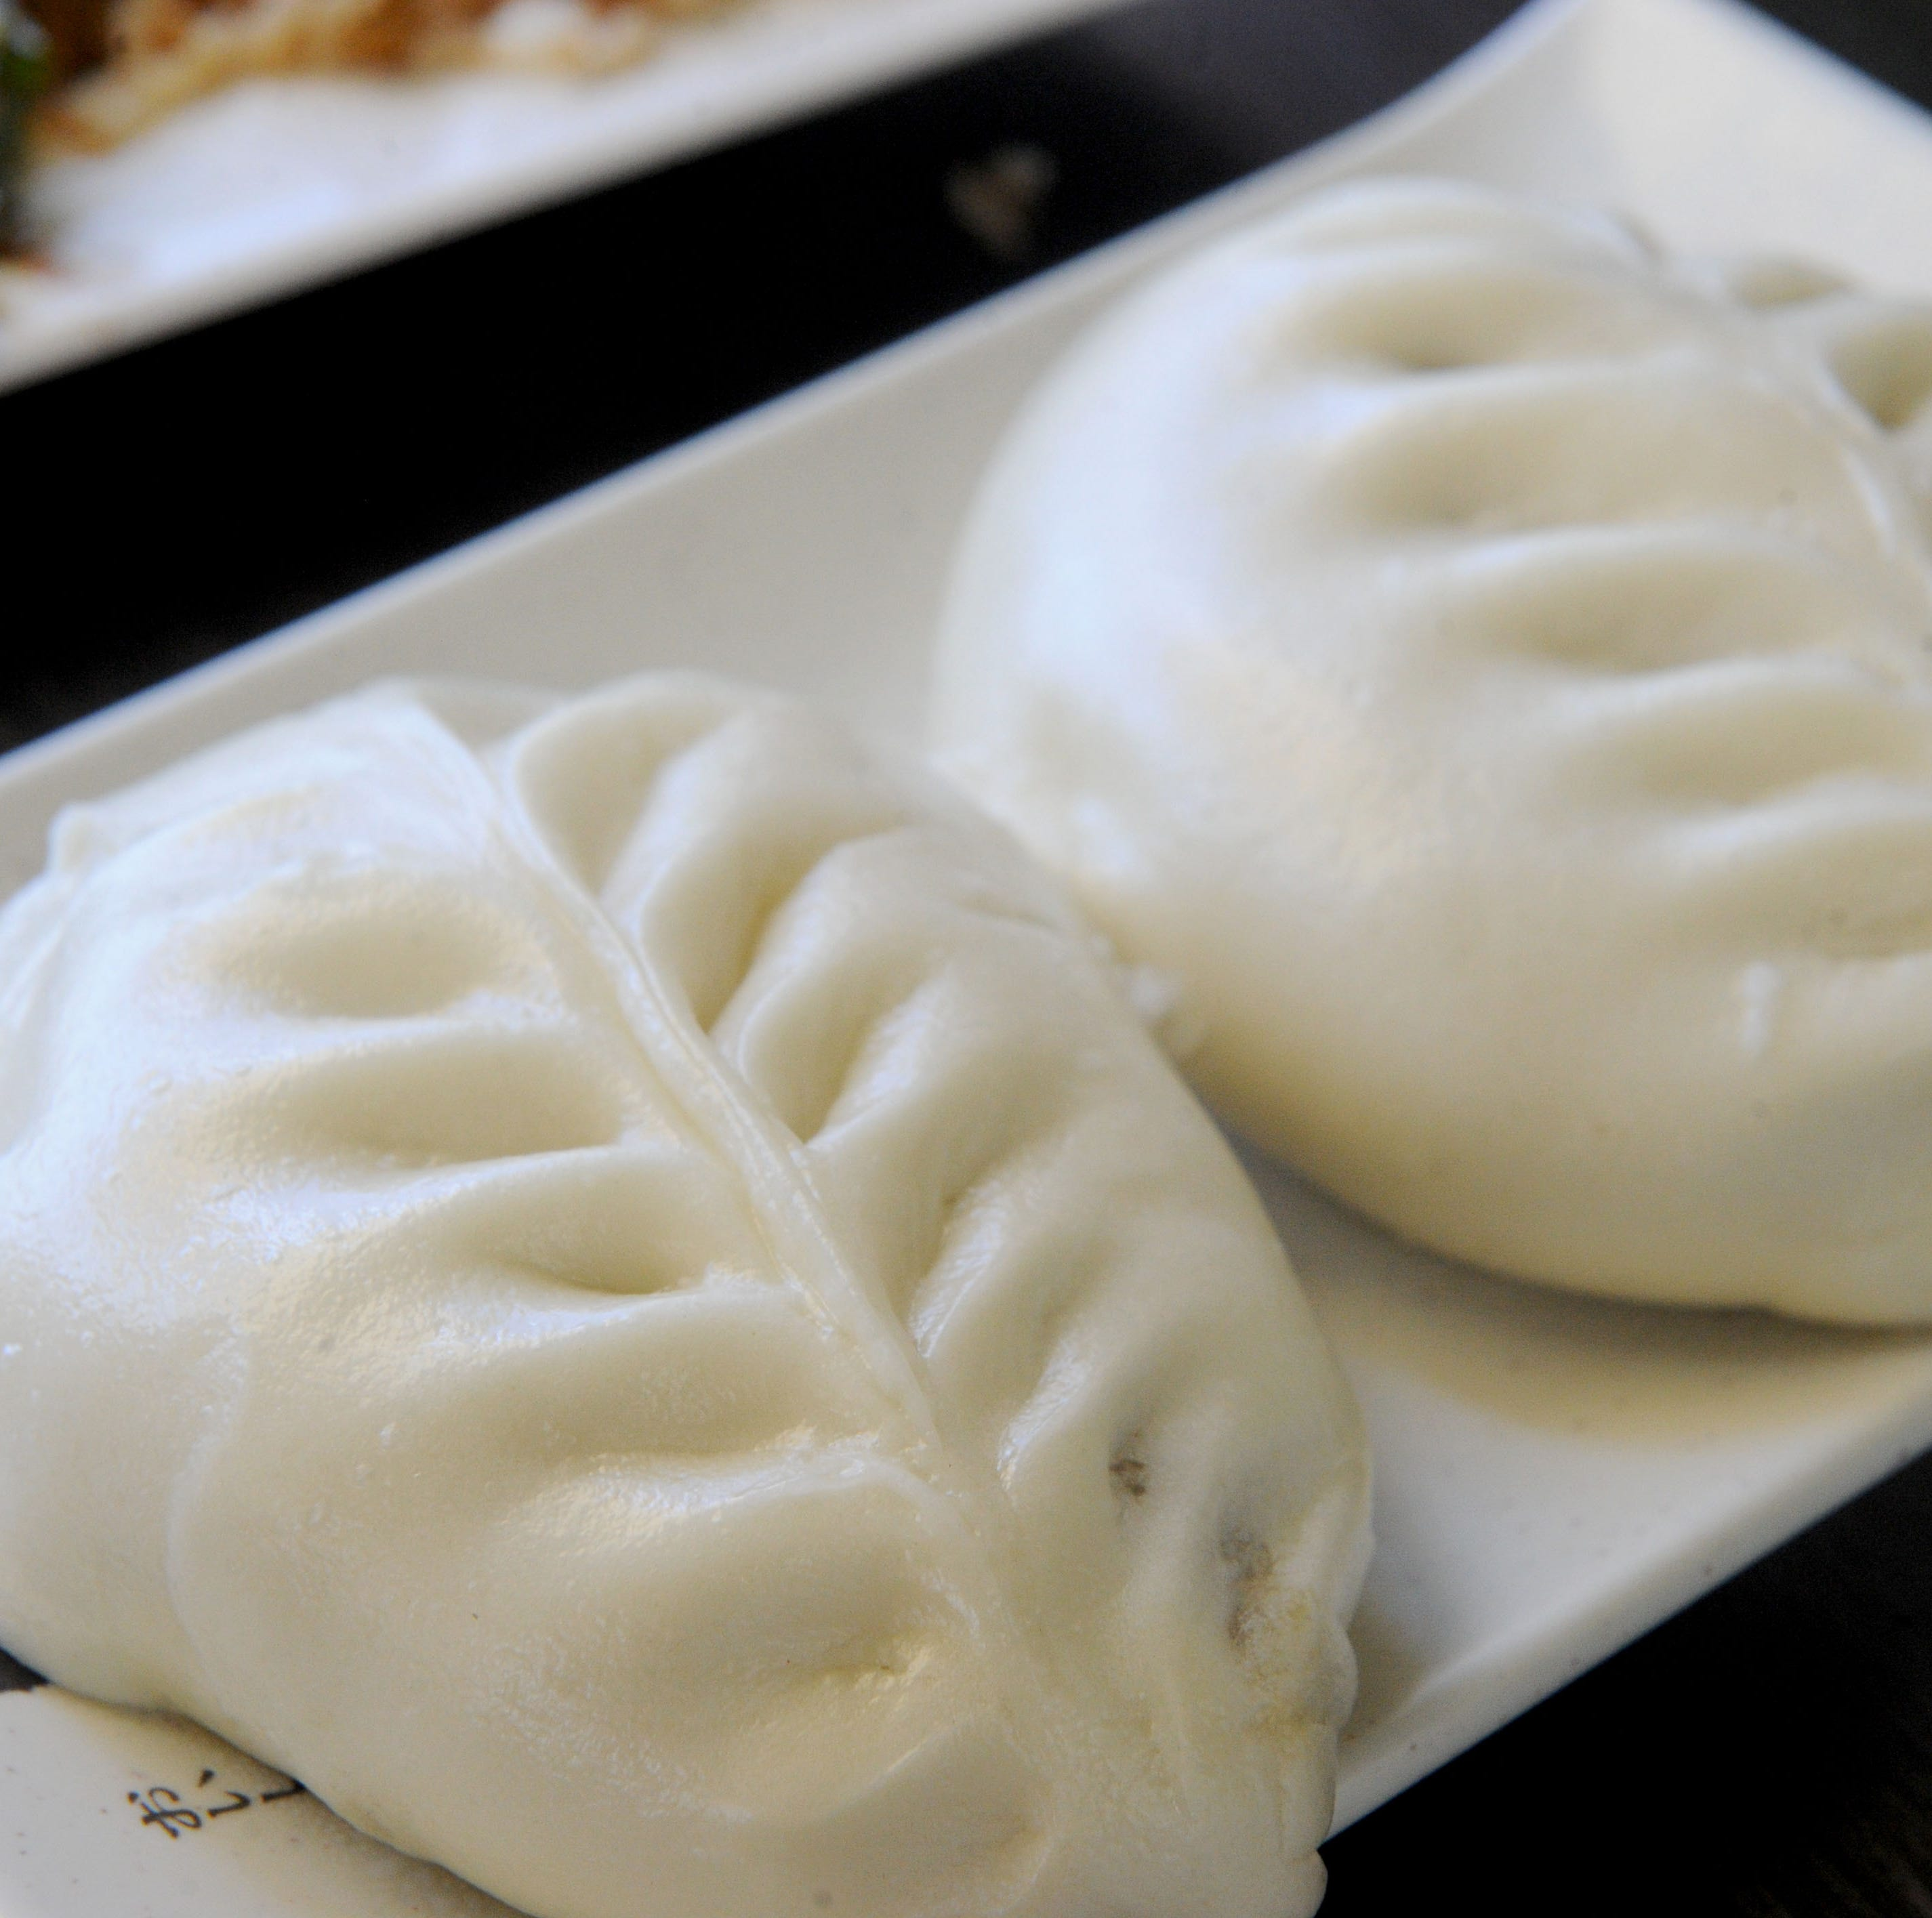 Restaurant review: Bounty of options at Ventura's Tasty China